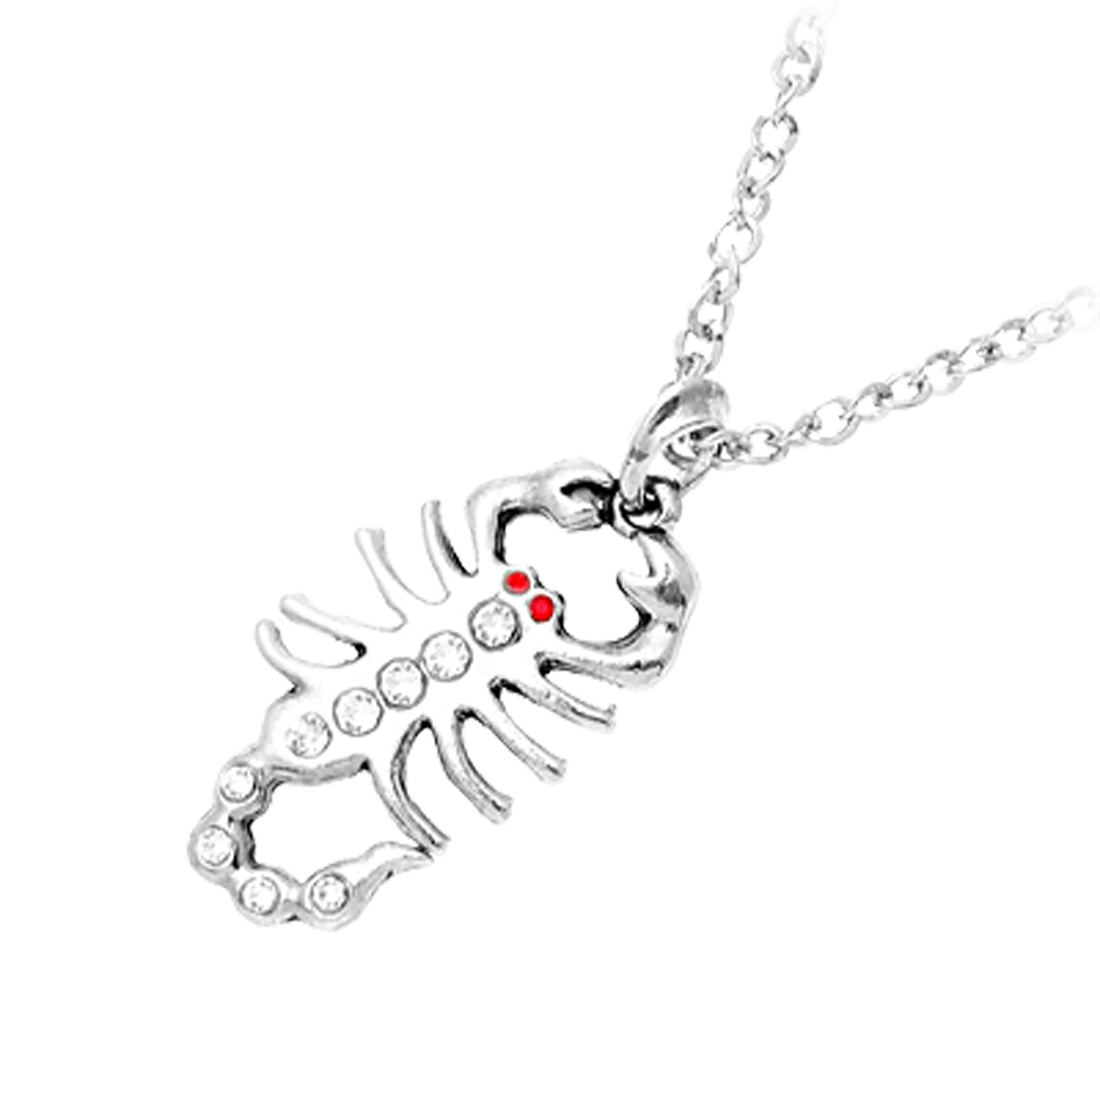 Fashion Jewelry Lobster Pendant with Man Made Crystal Chain Necklace